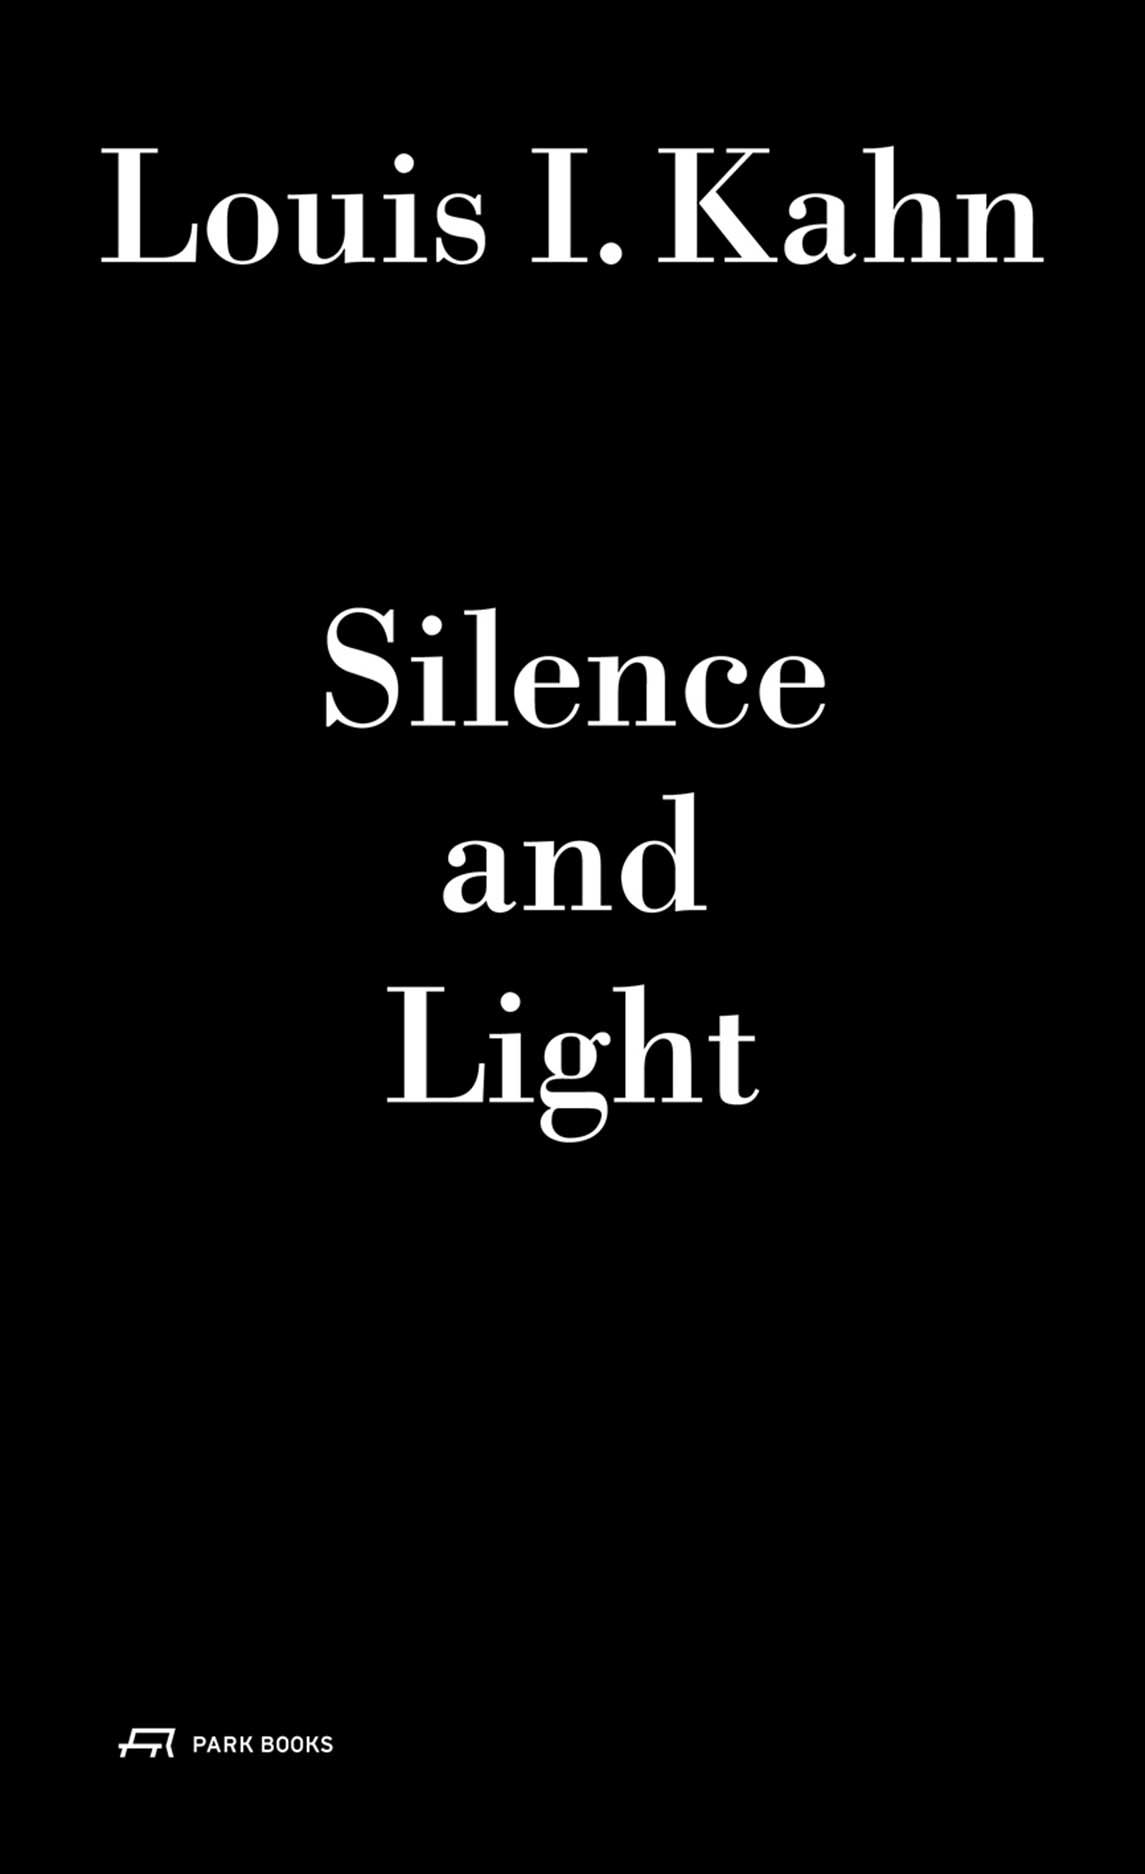 Louis I. Kahn - Silence and Light: The Lecture at ETH Zurich, February 12, 1969